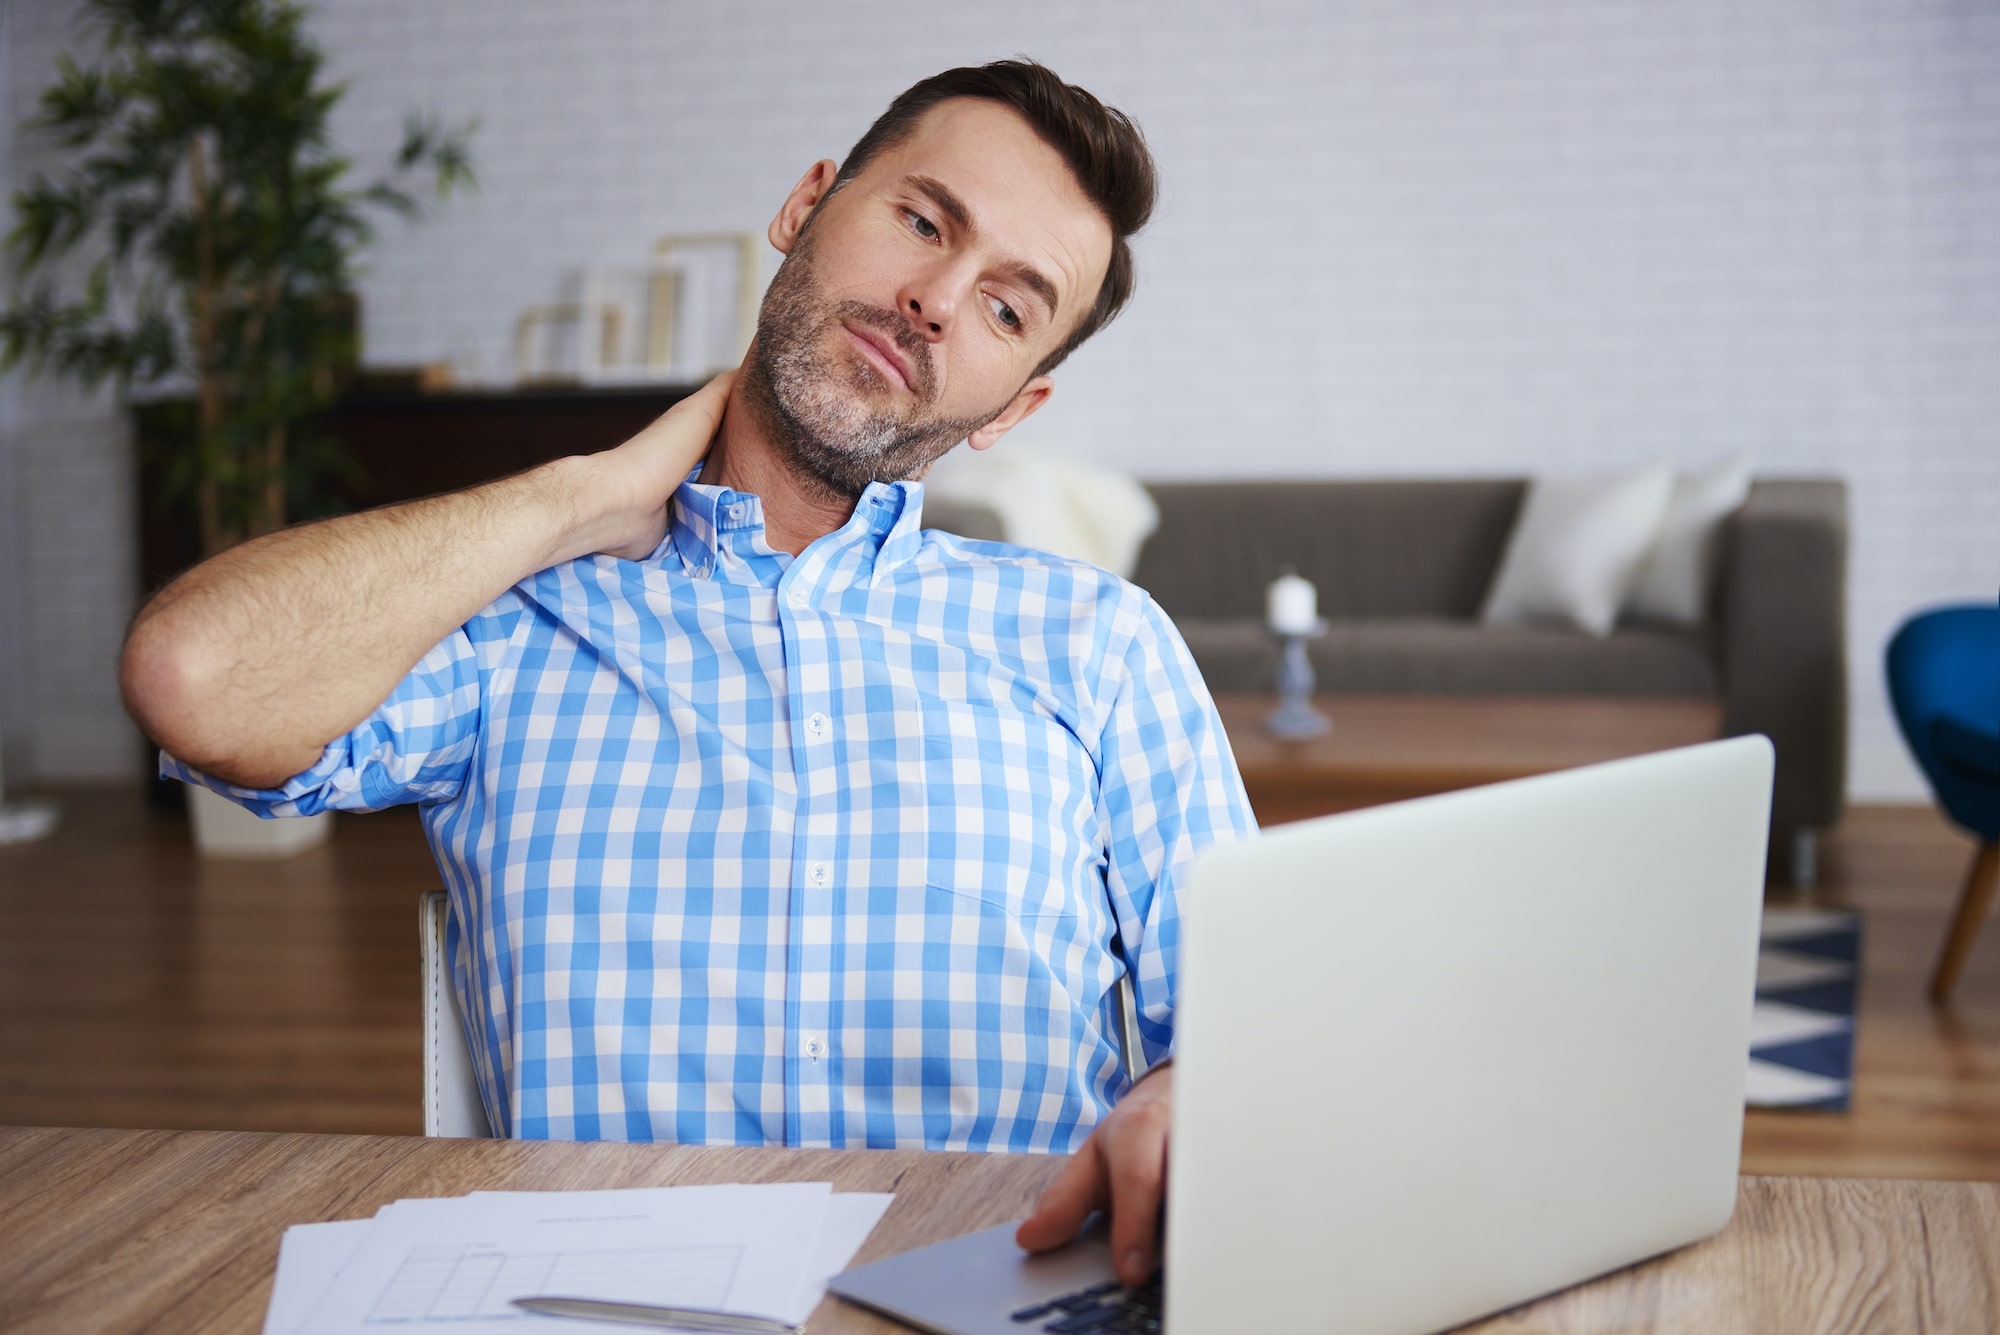 Young man holding his neck due to pain